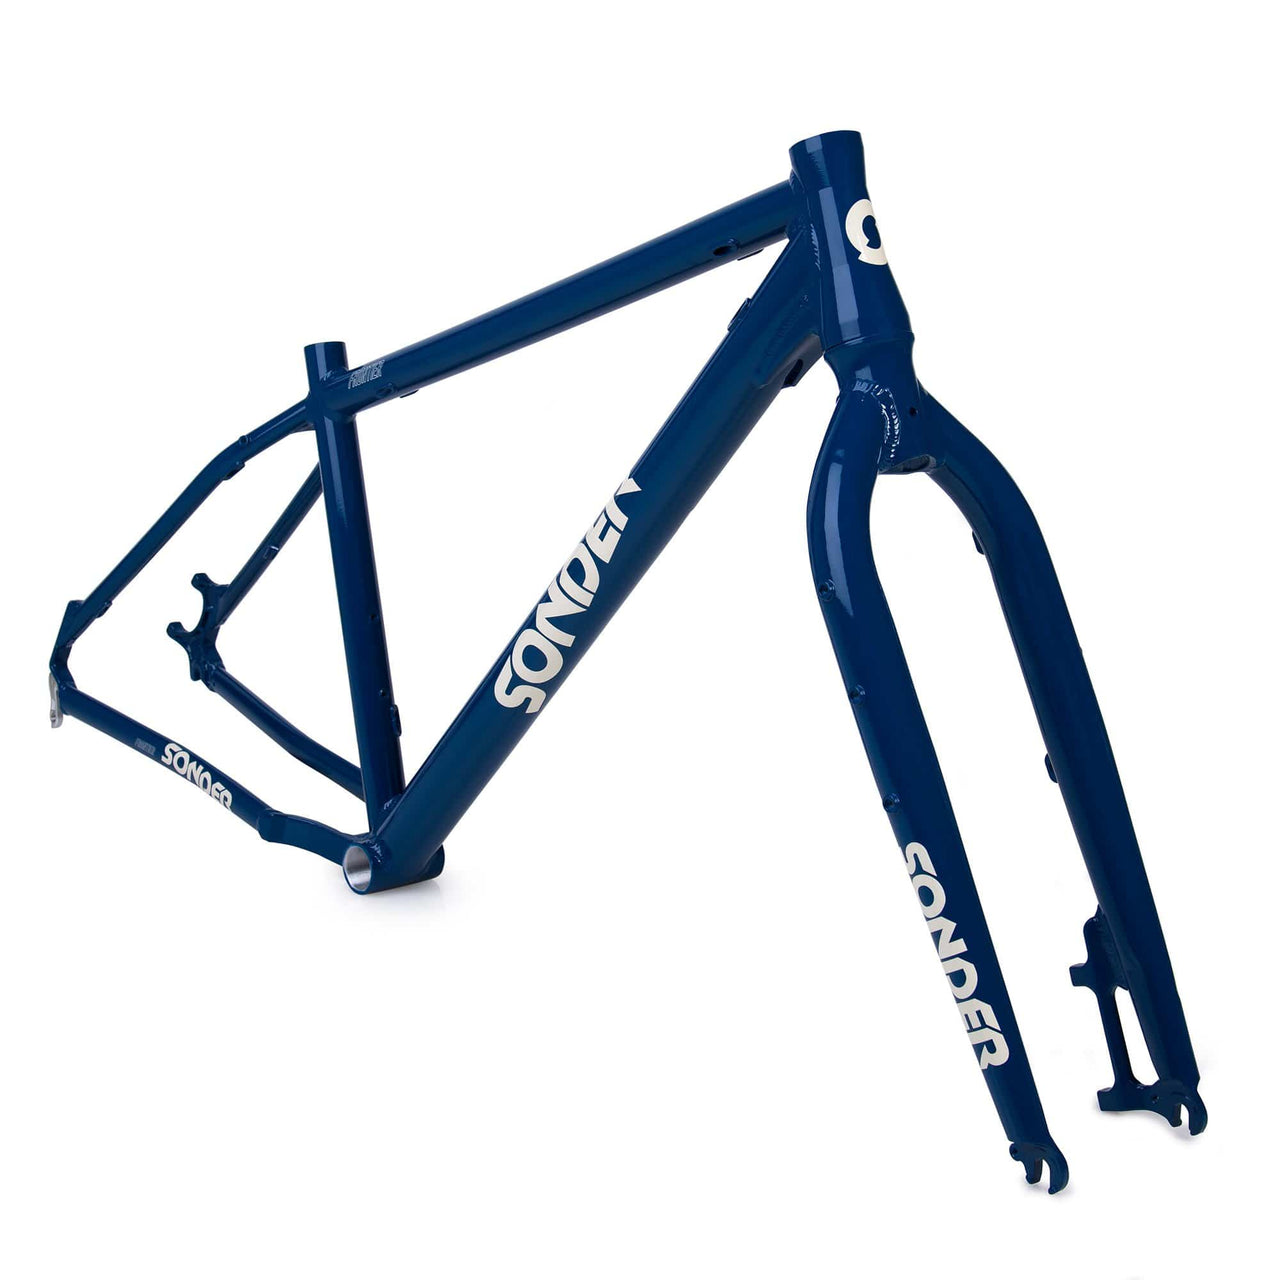 Frontier [V1] Frame And Fork